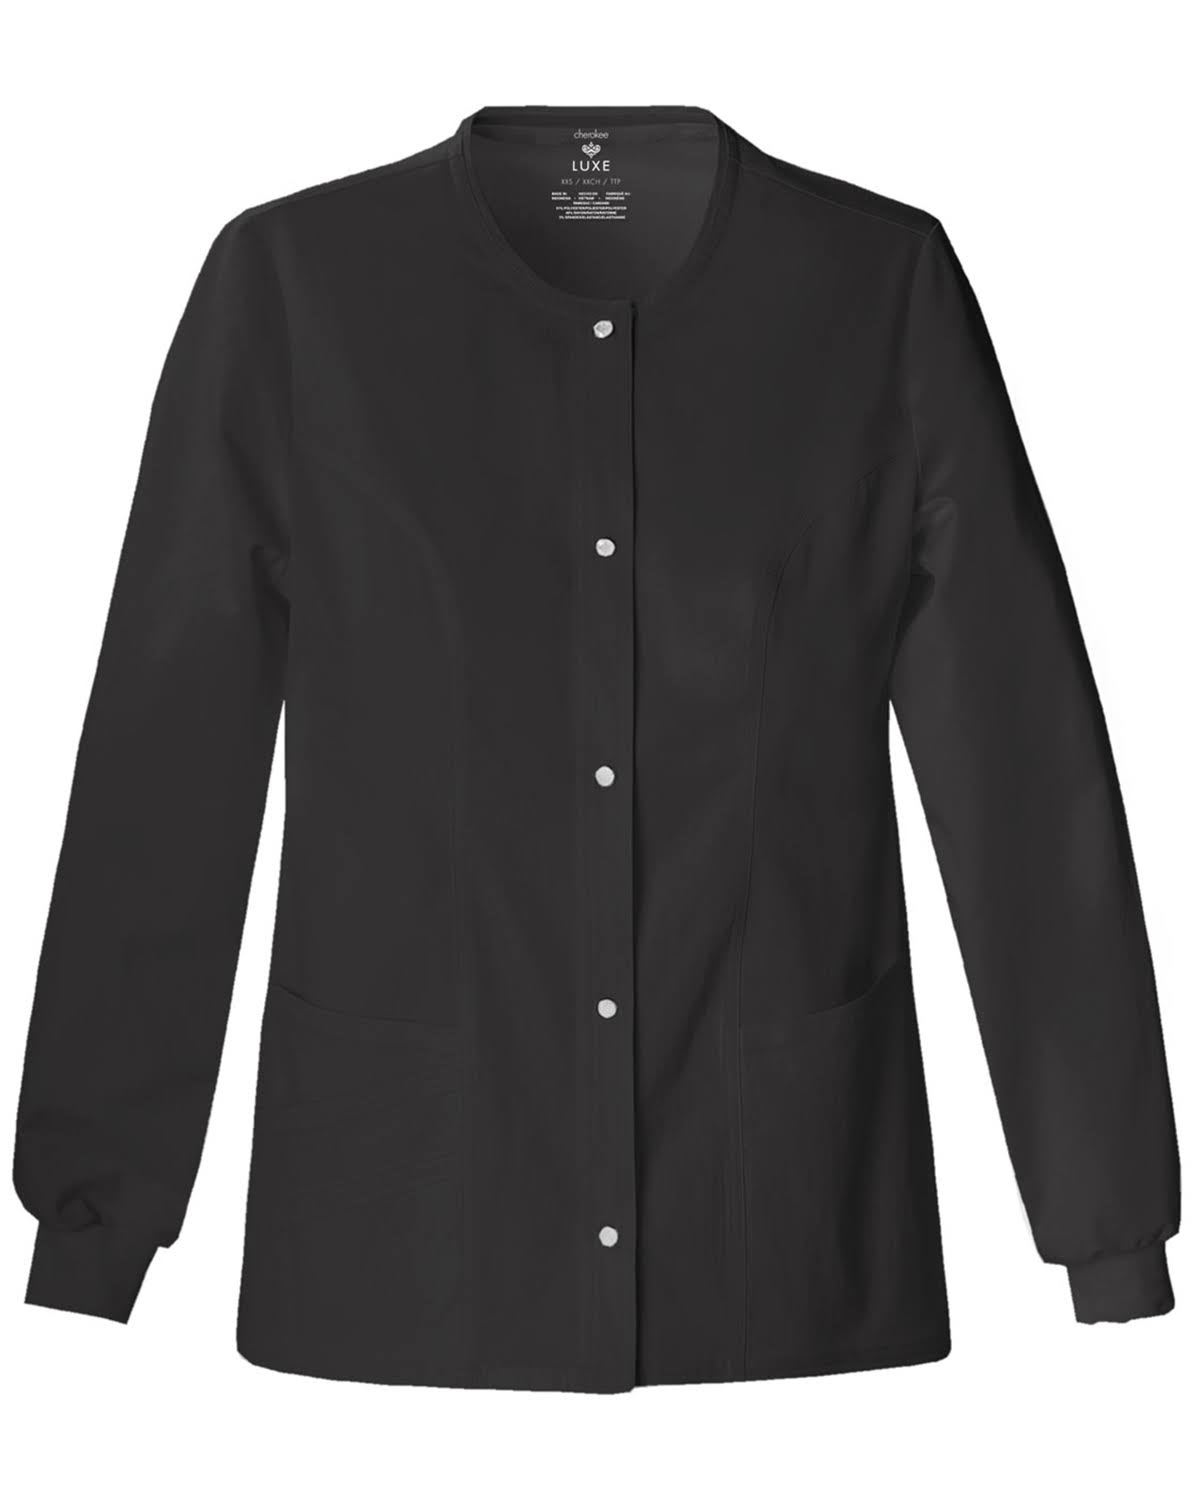 Cherokee Women's Scrubs Luxe Snap Front Warm Up Jacket - Black, Large